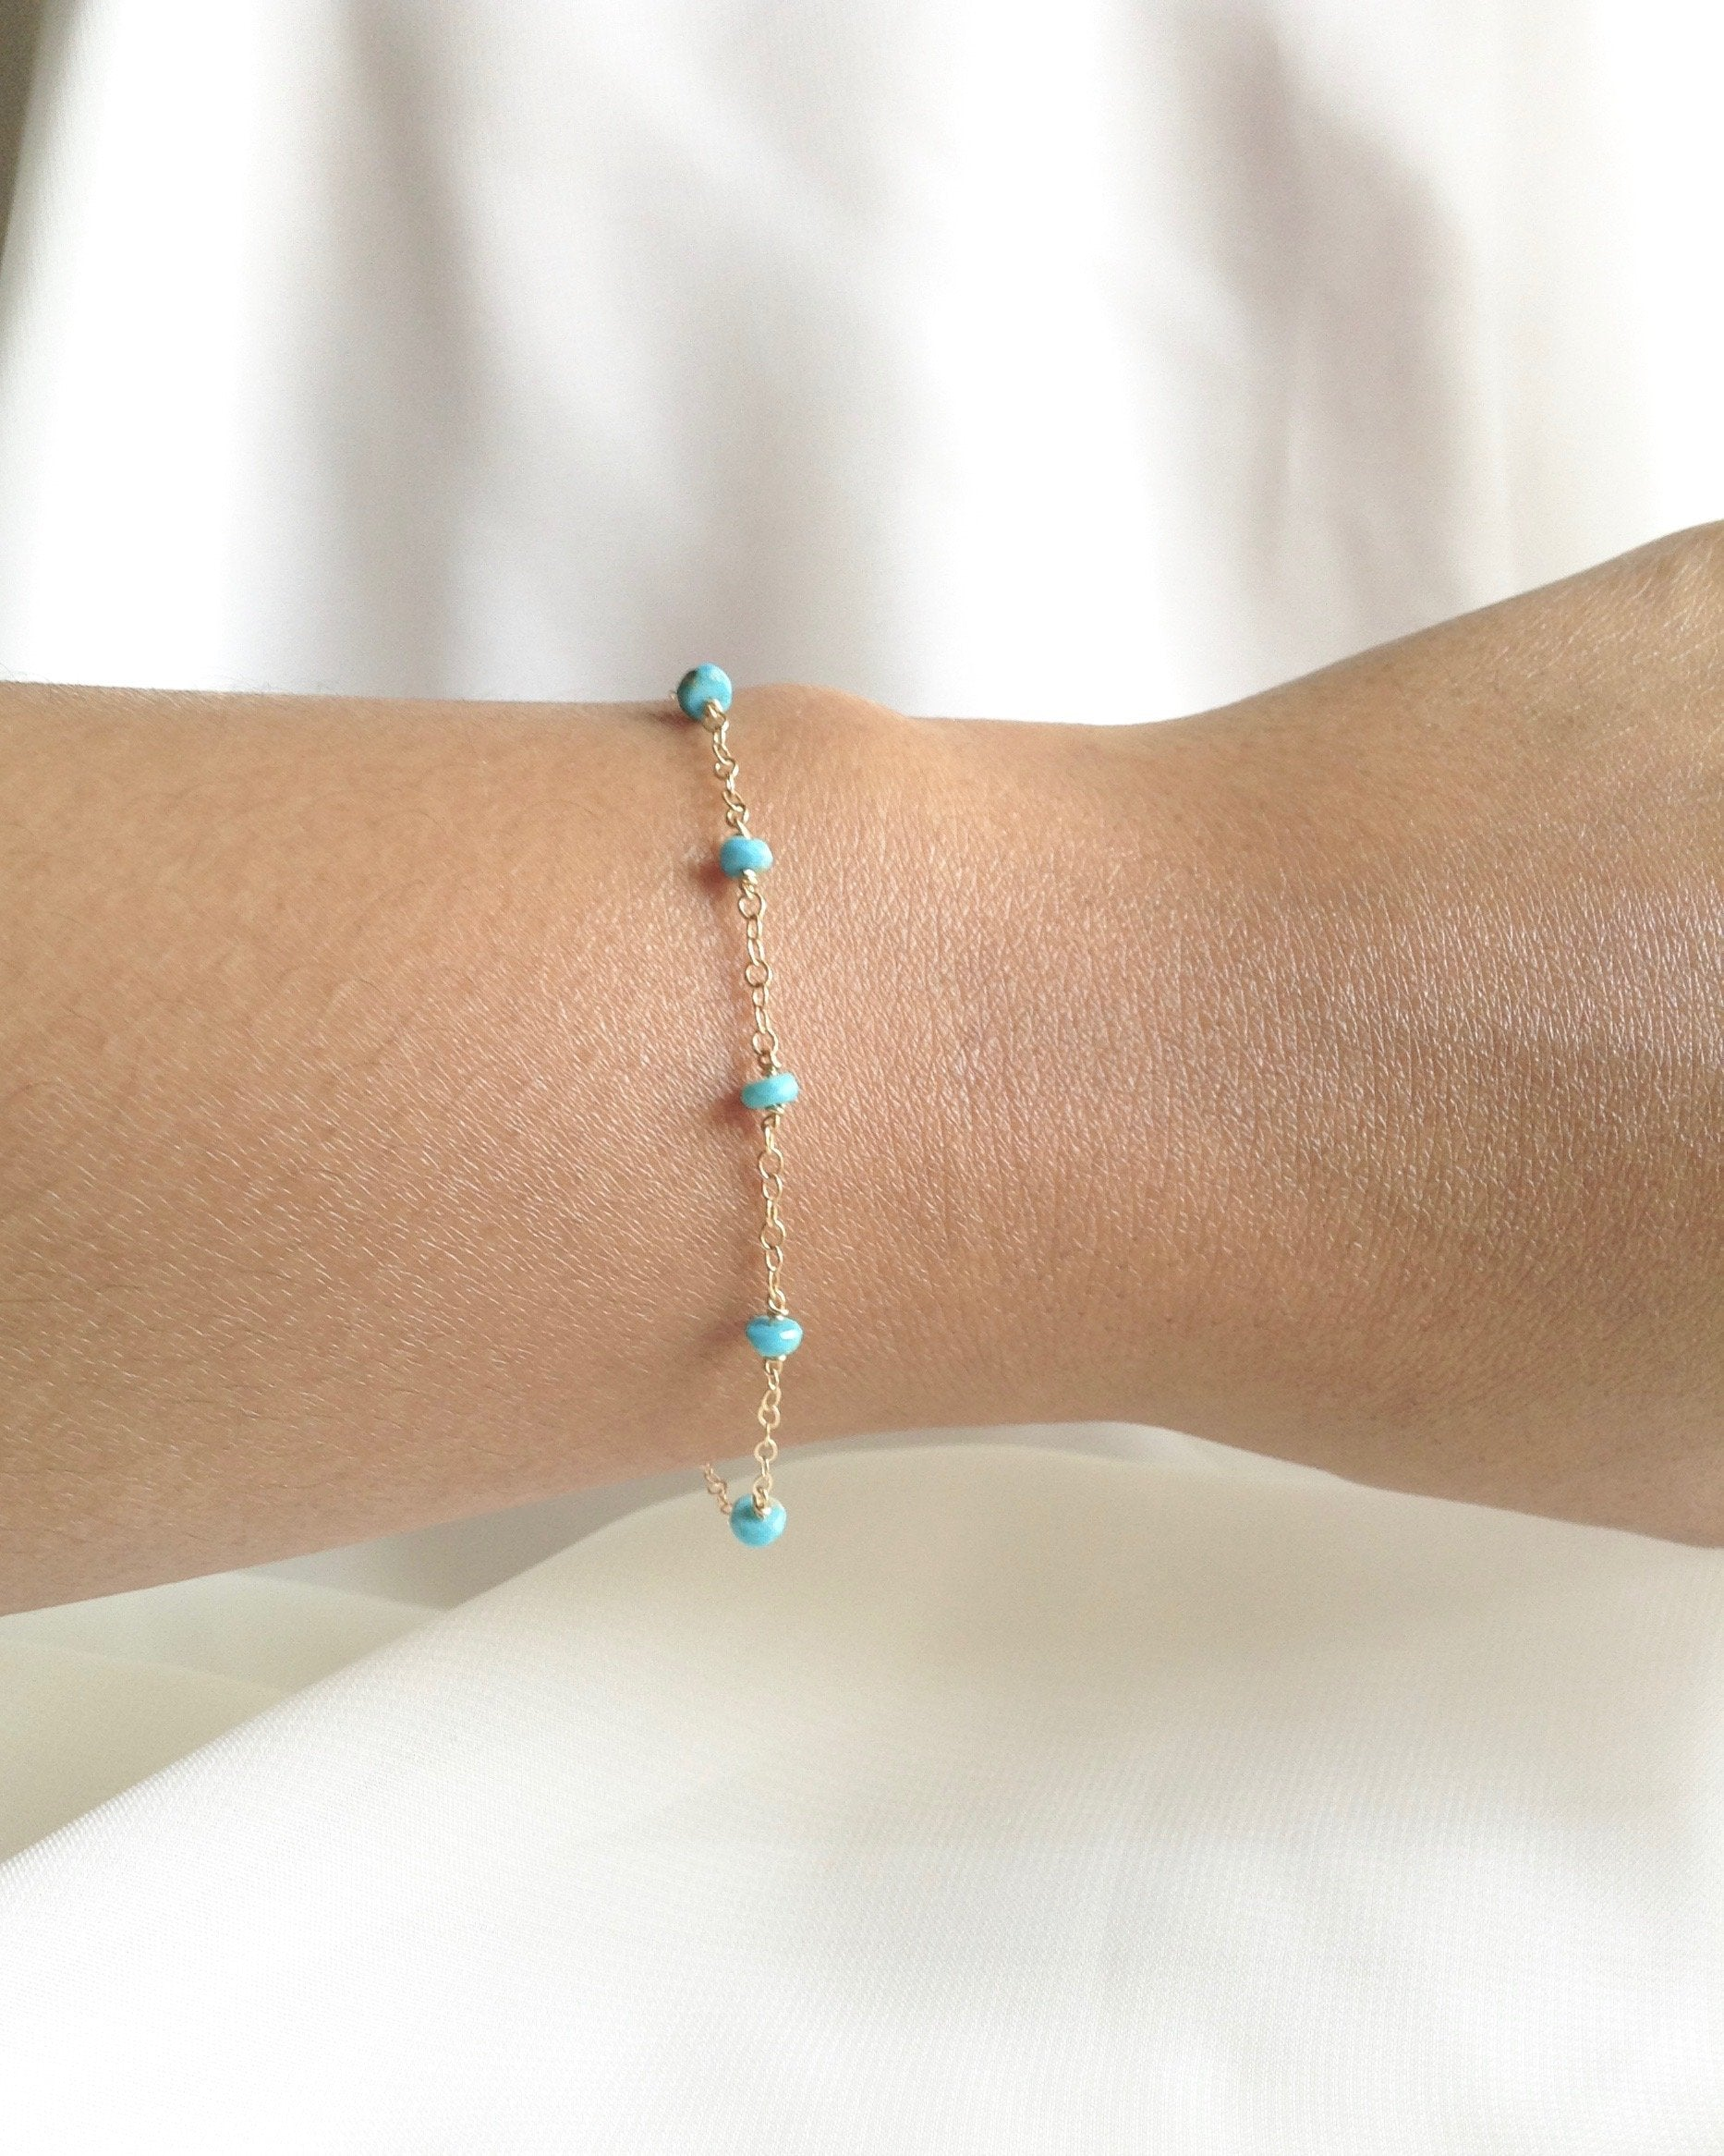 Sleeping Beauty Turquoise Simple Dainty Bracelet | Delicate Chain Bracelet | IB Jewelry